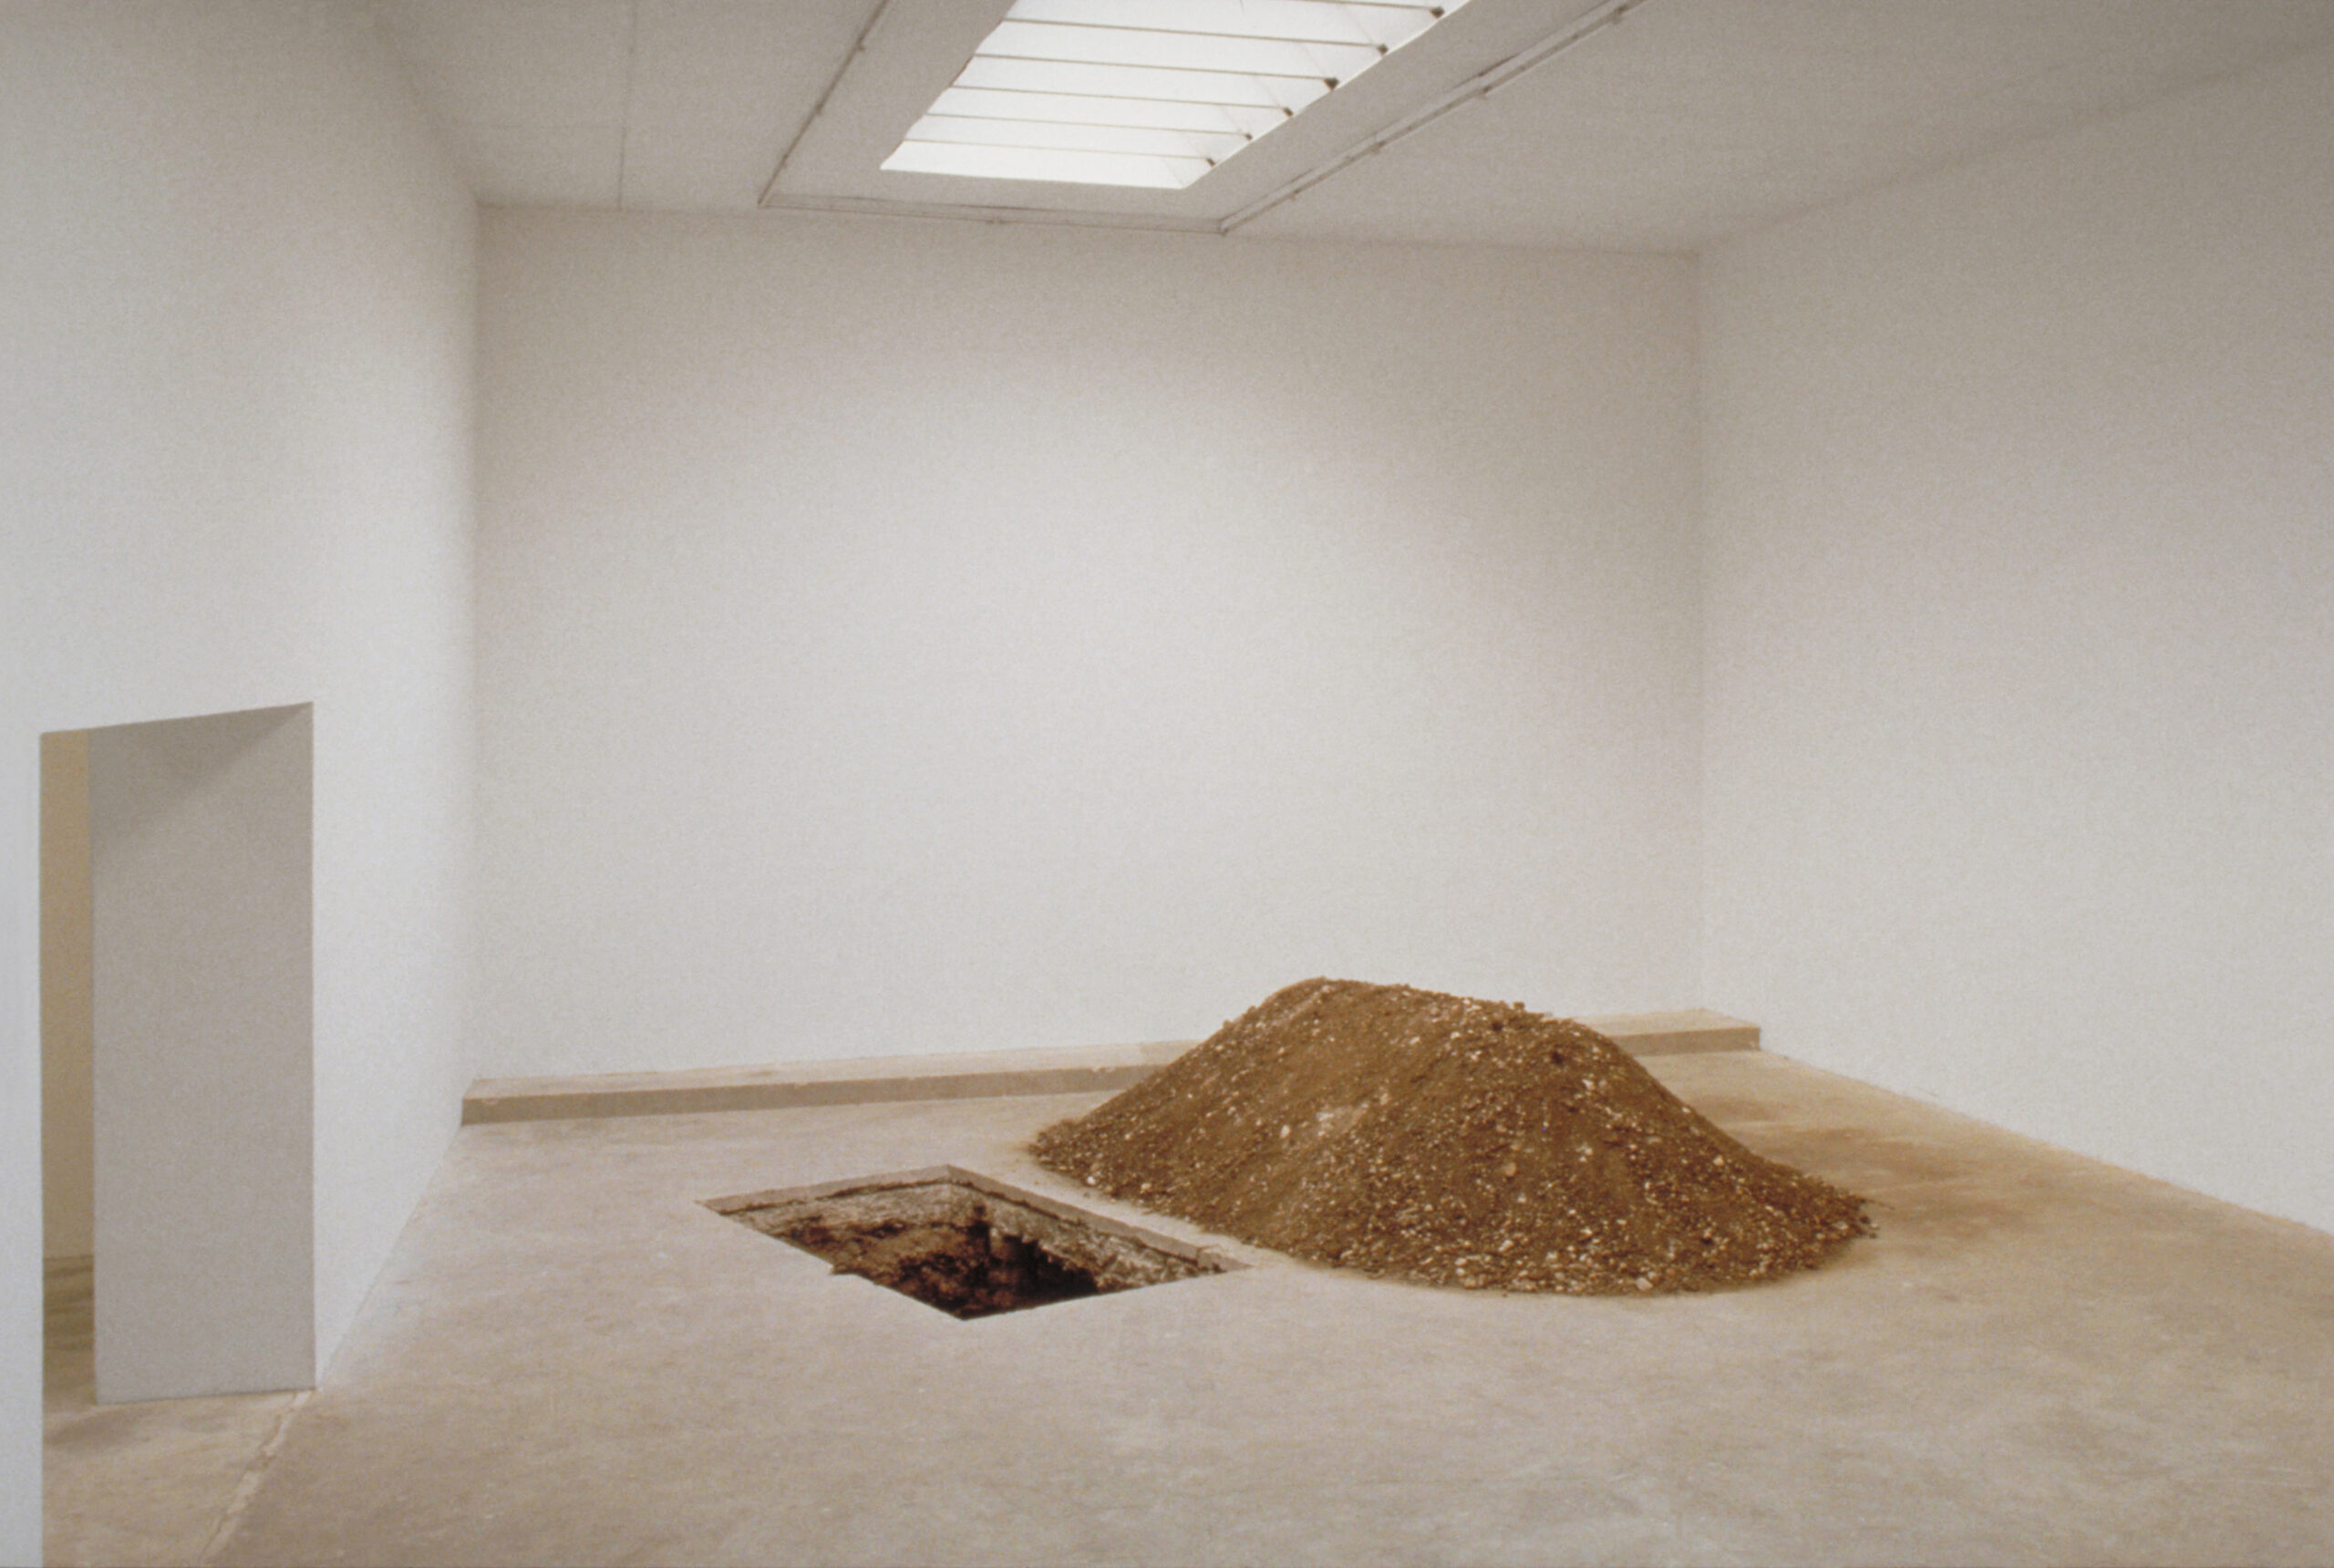 Maurizio Cattelan, Untitled, 1997, Rectangular hole, pile of removed earth  200 x 100 x 150 cm, Installation view, Le Consortium, Dijon, 1997  Courtesy Maurizio Cattelan's Archive  Photo André Morin